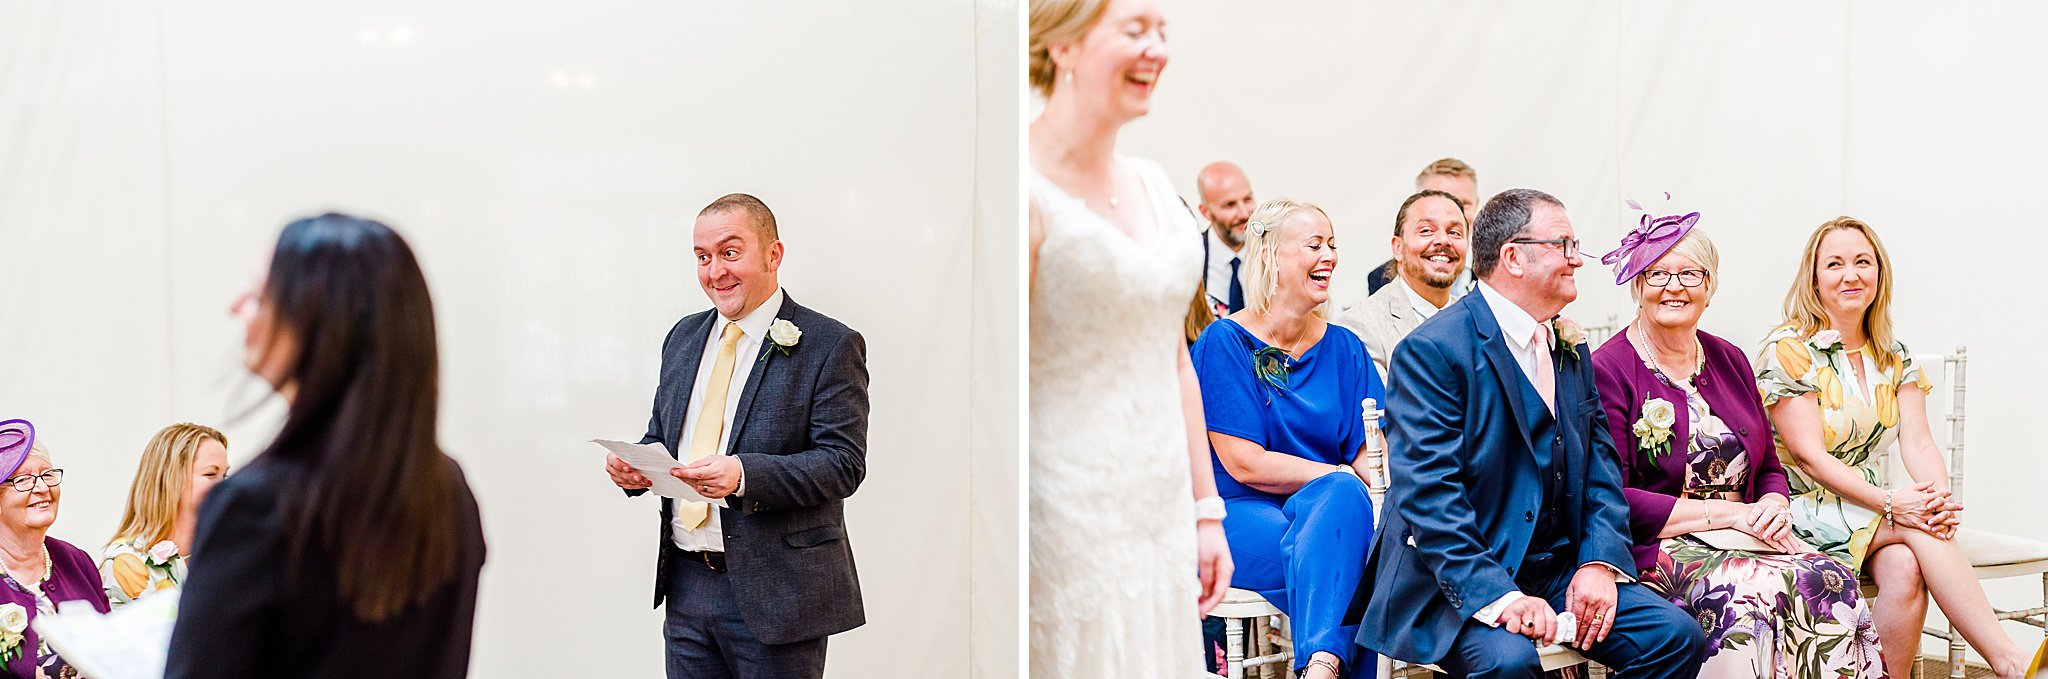 Bride's brother gives funny reading during the wedding ceremony at Newton House Barns